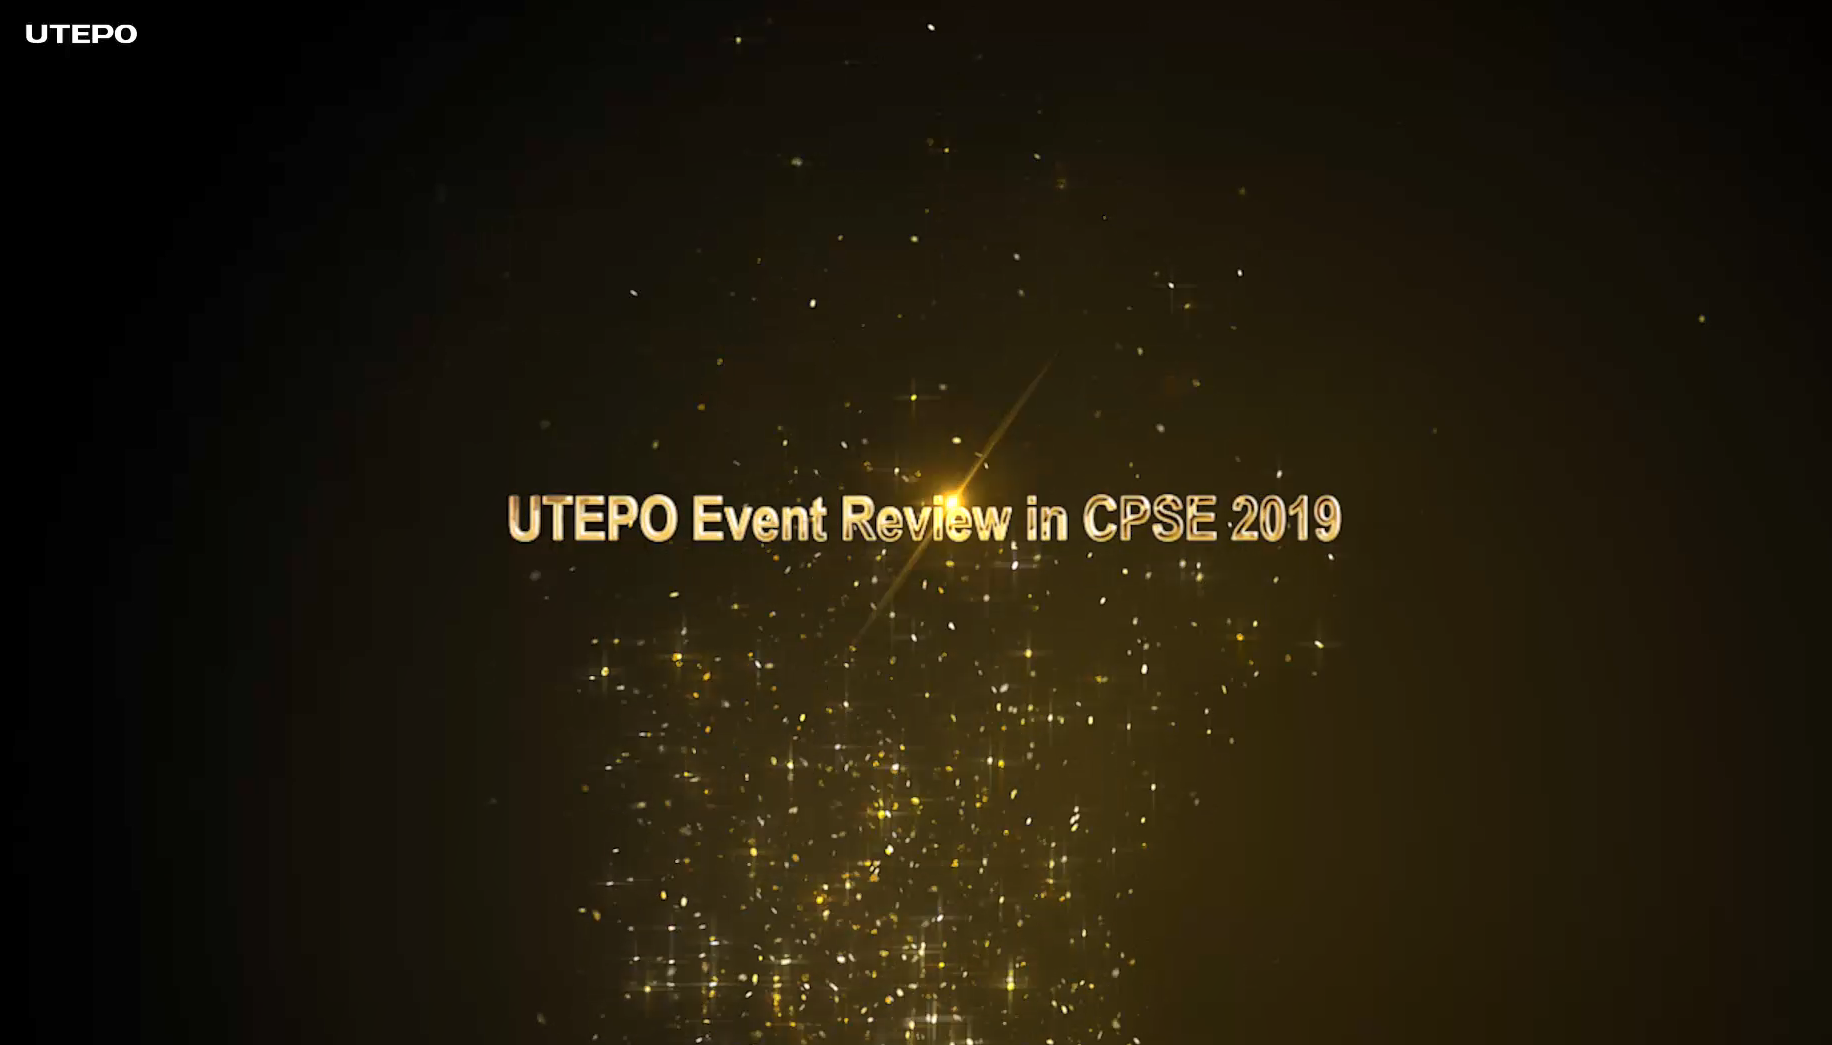 UTEPO Event Review in CPSE 2019